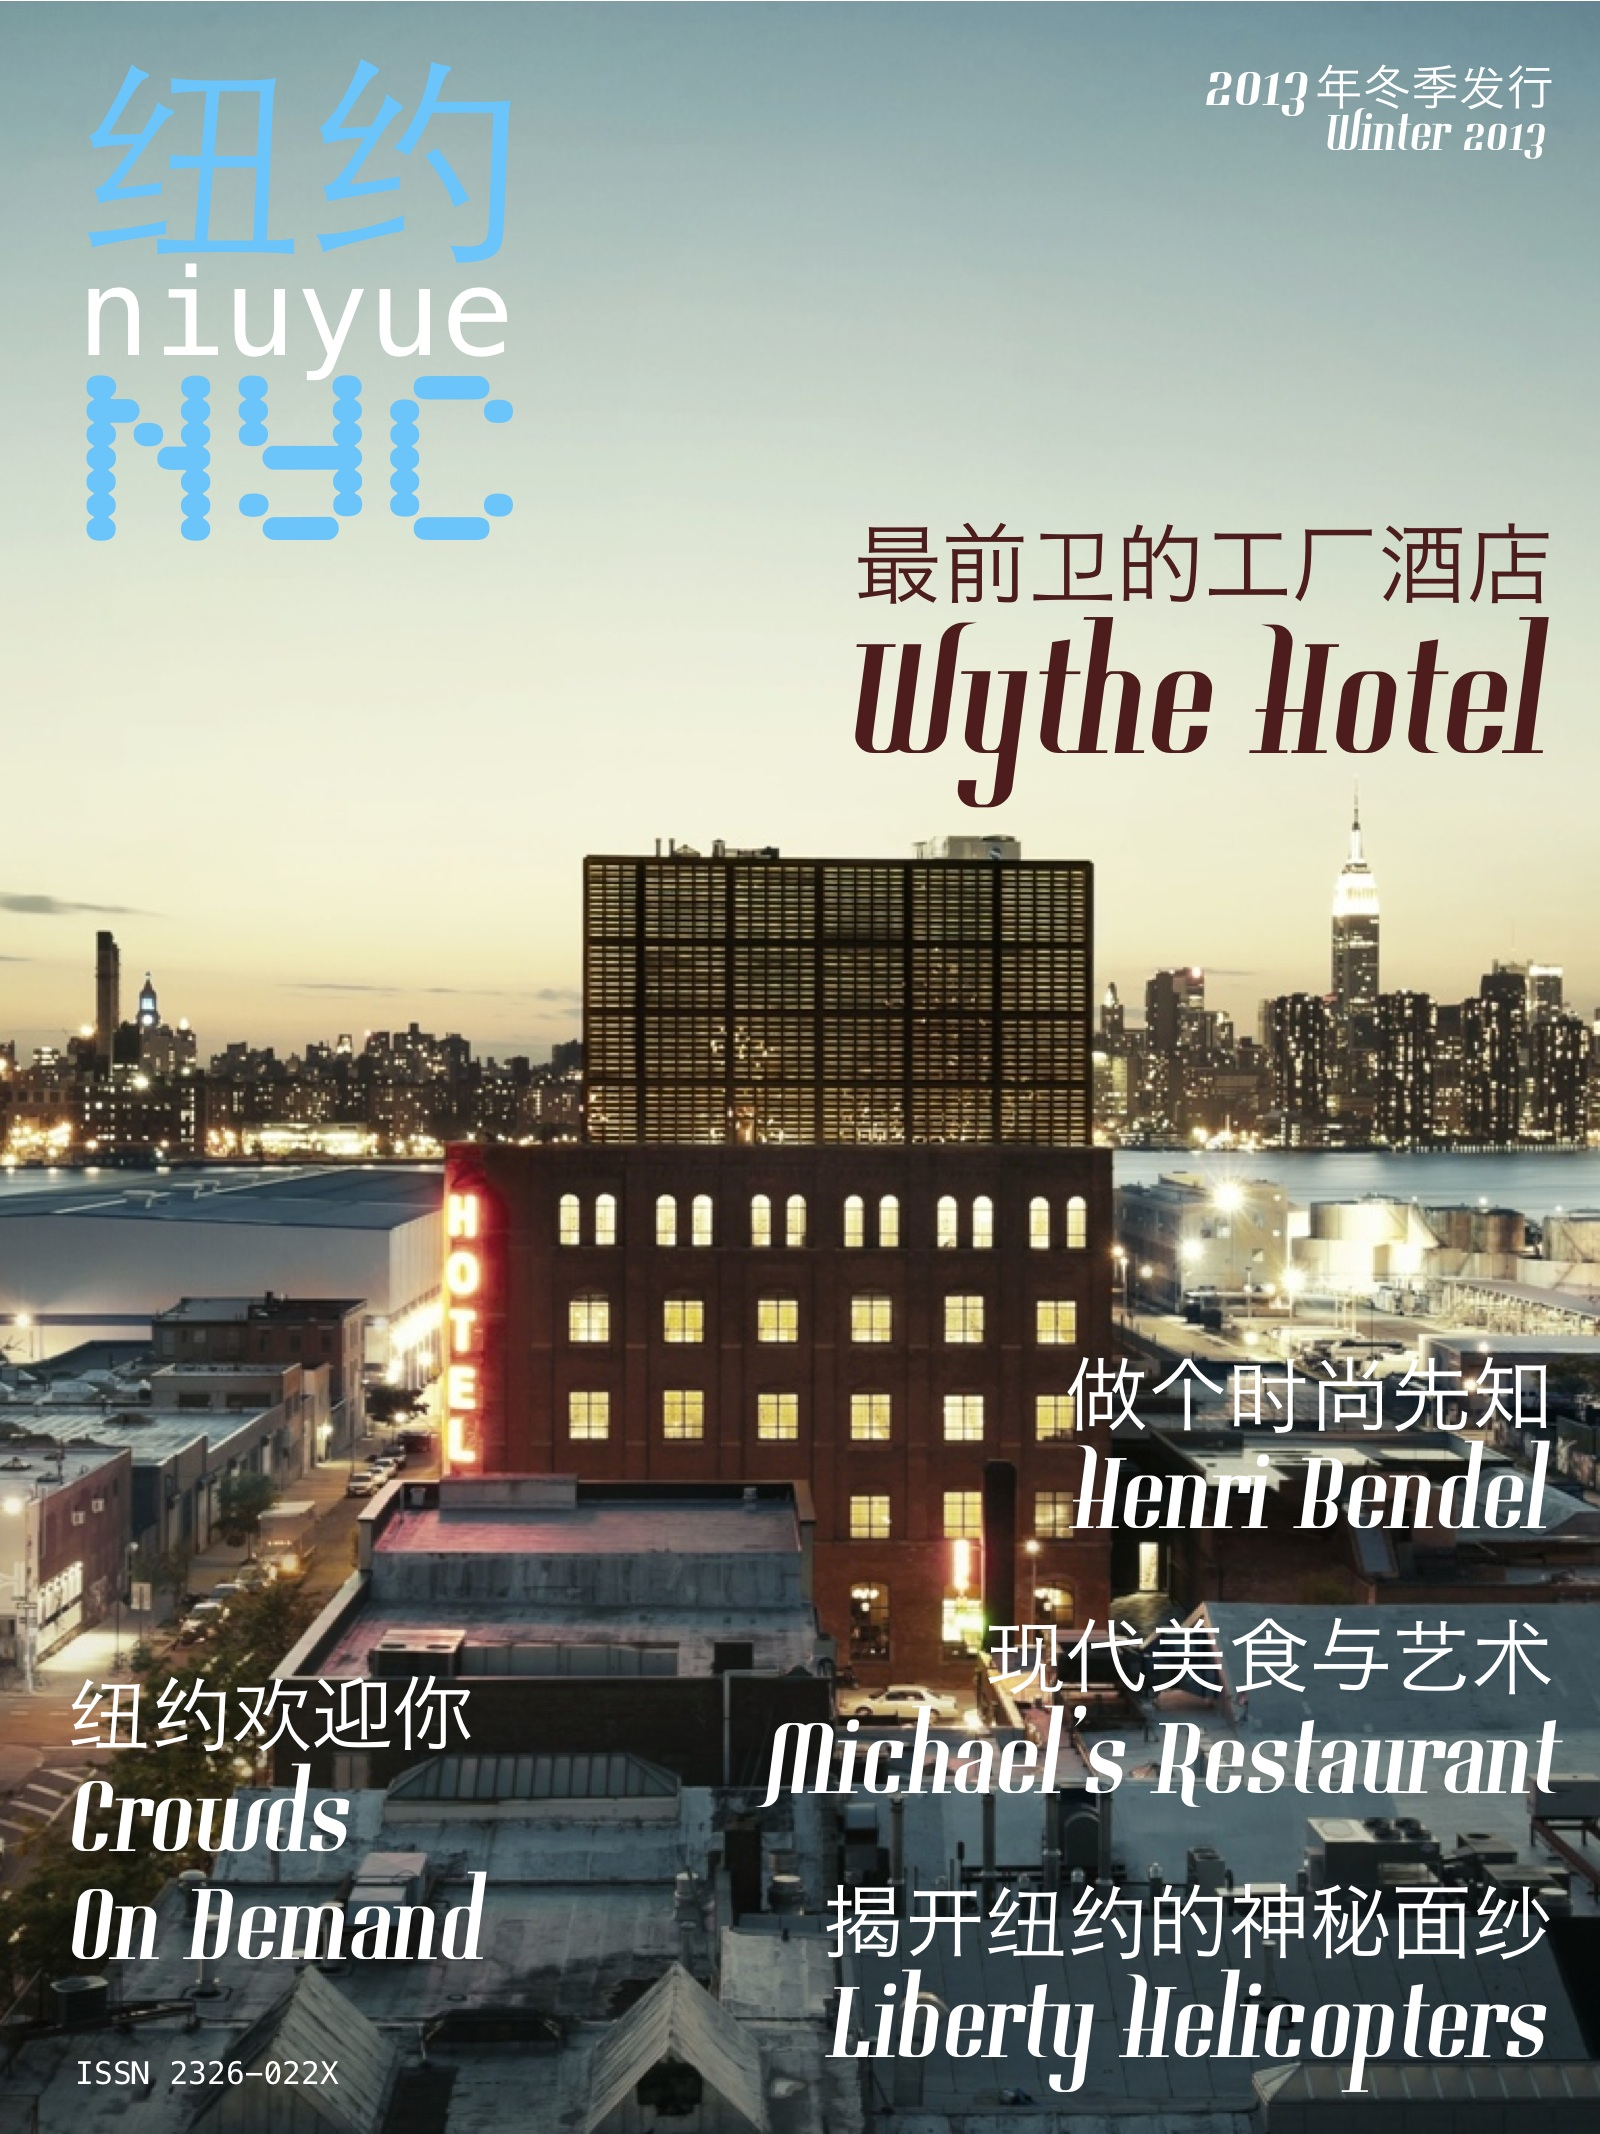 Niuyue Mag Winter 2013 Cover.jpg